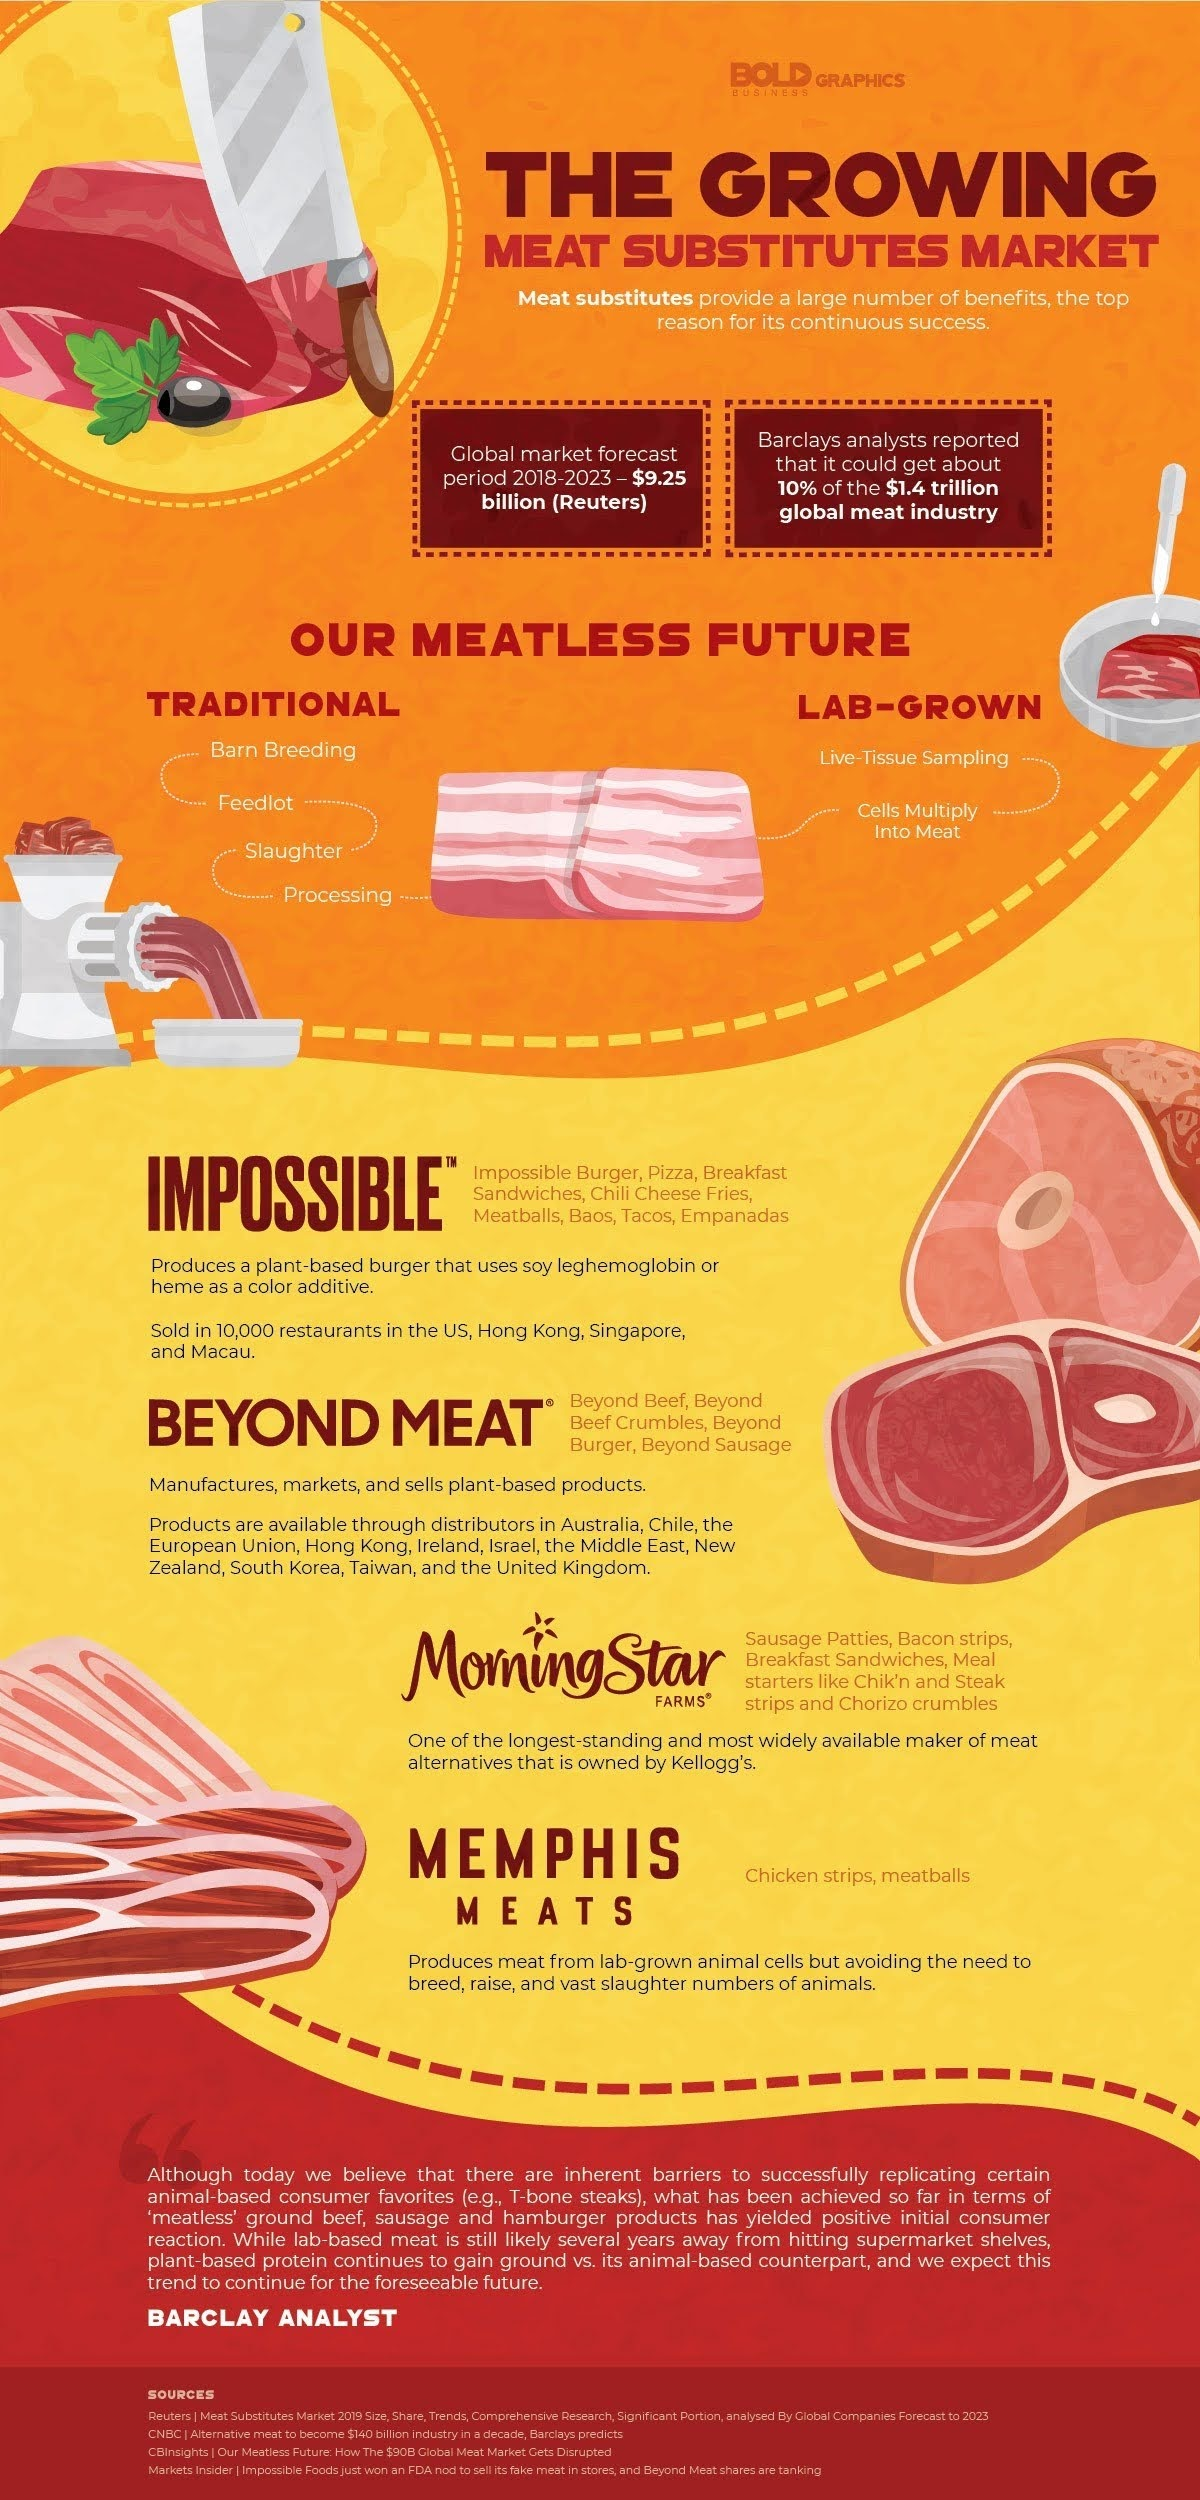 The Growing Meat Substitutes Market #infographic